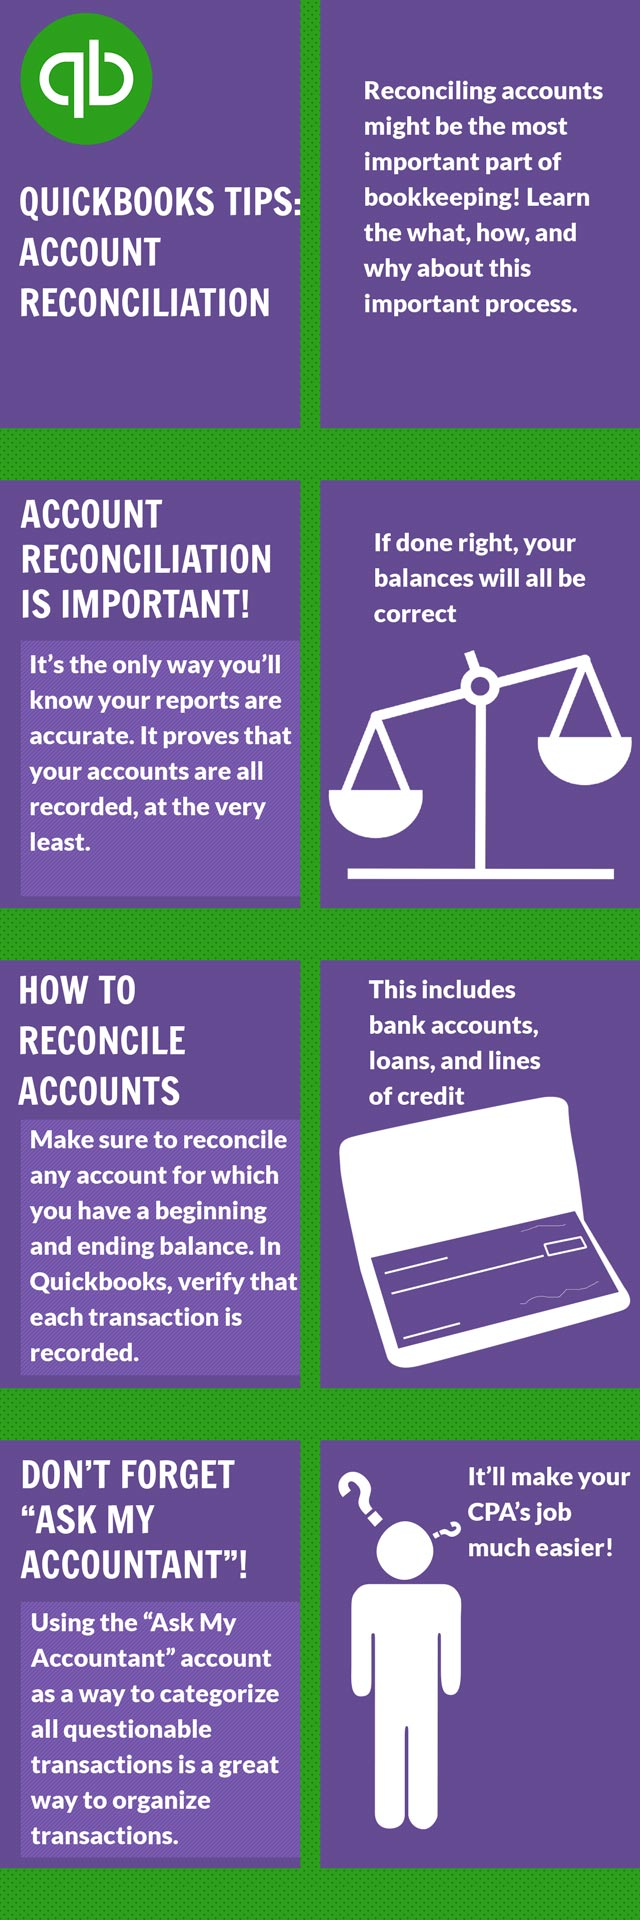 Quickbooks-Account-Reconciliation.jpg